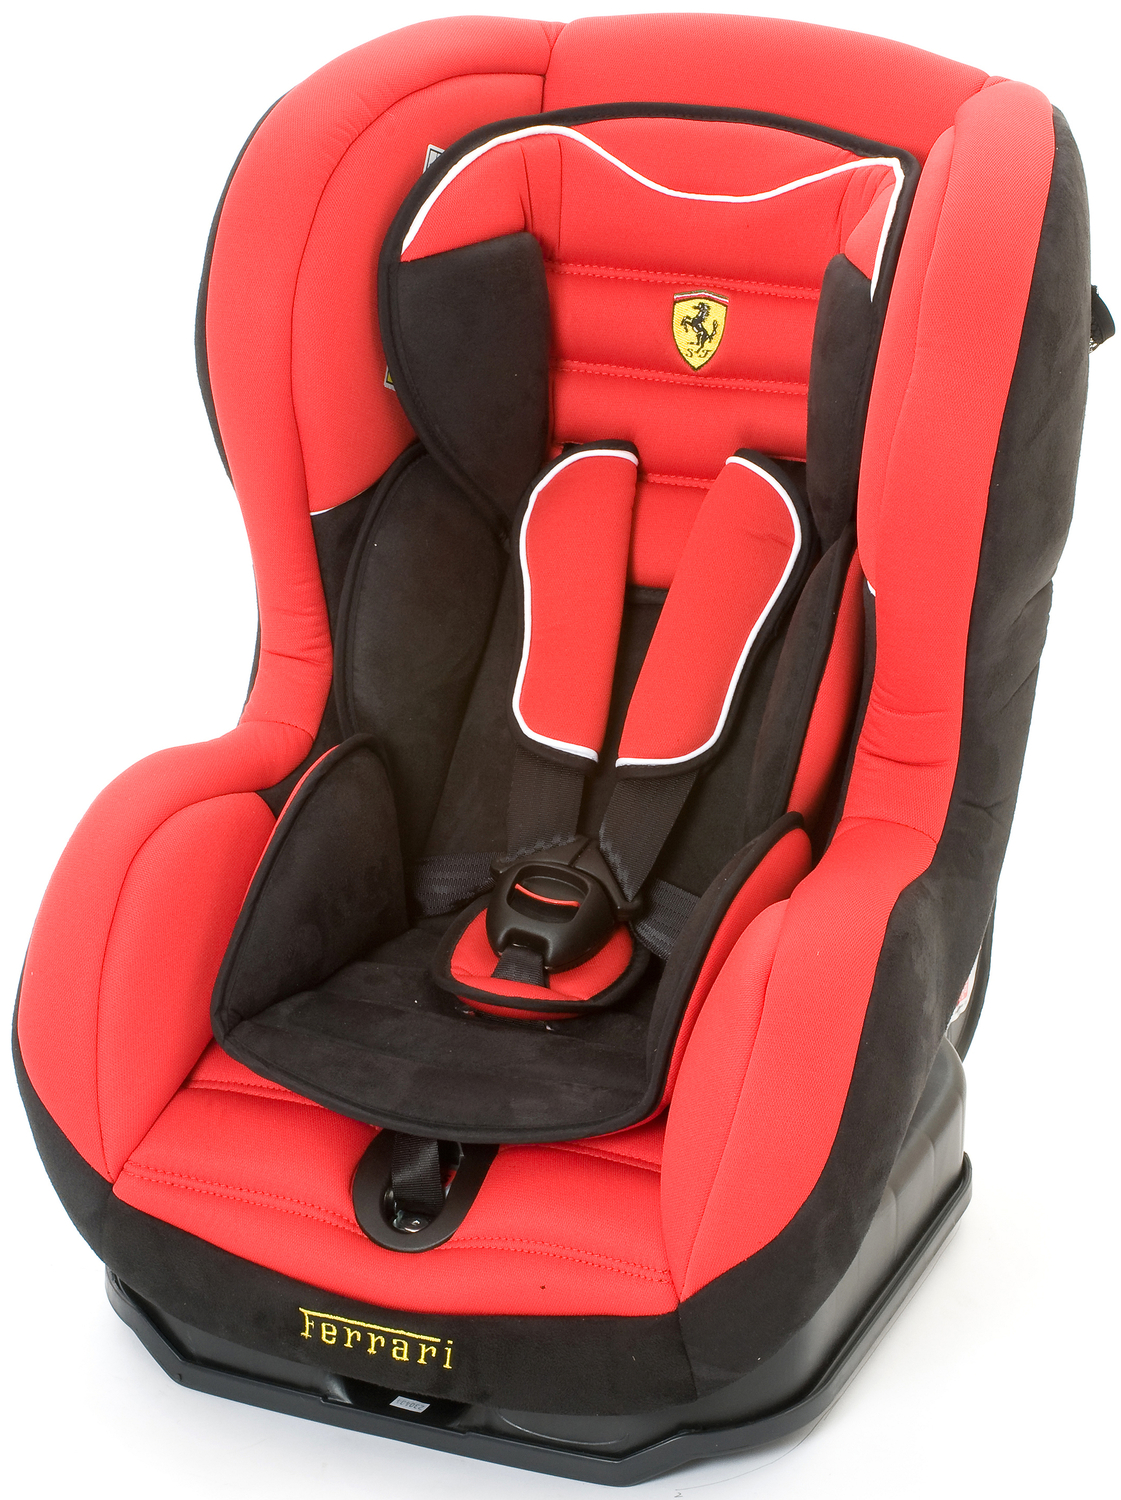 ferrari cosmo sp kindersitz ece 0 1 0 18 kg. Black Bedroom Furniture Sets. Home Design Ideas